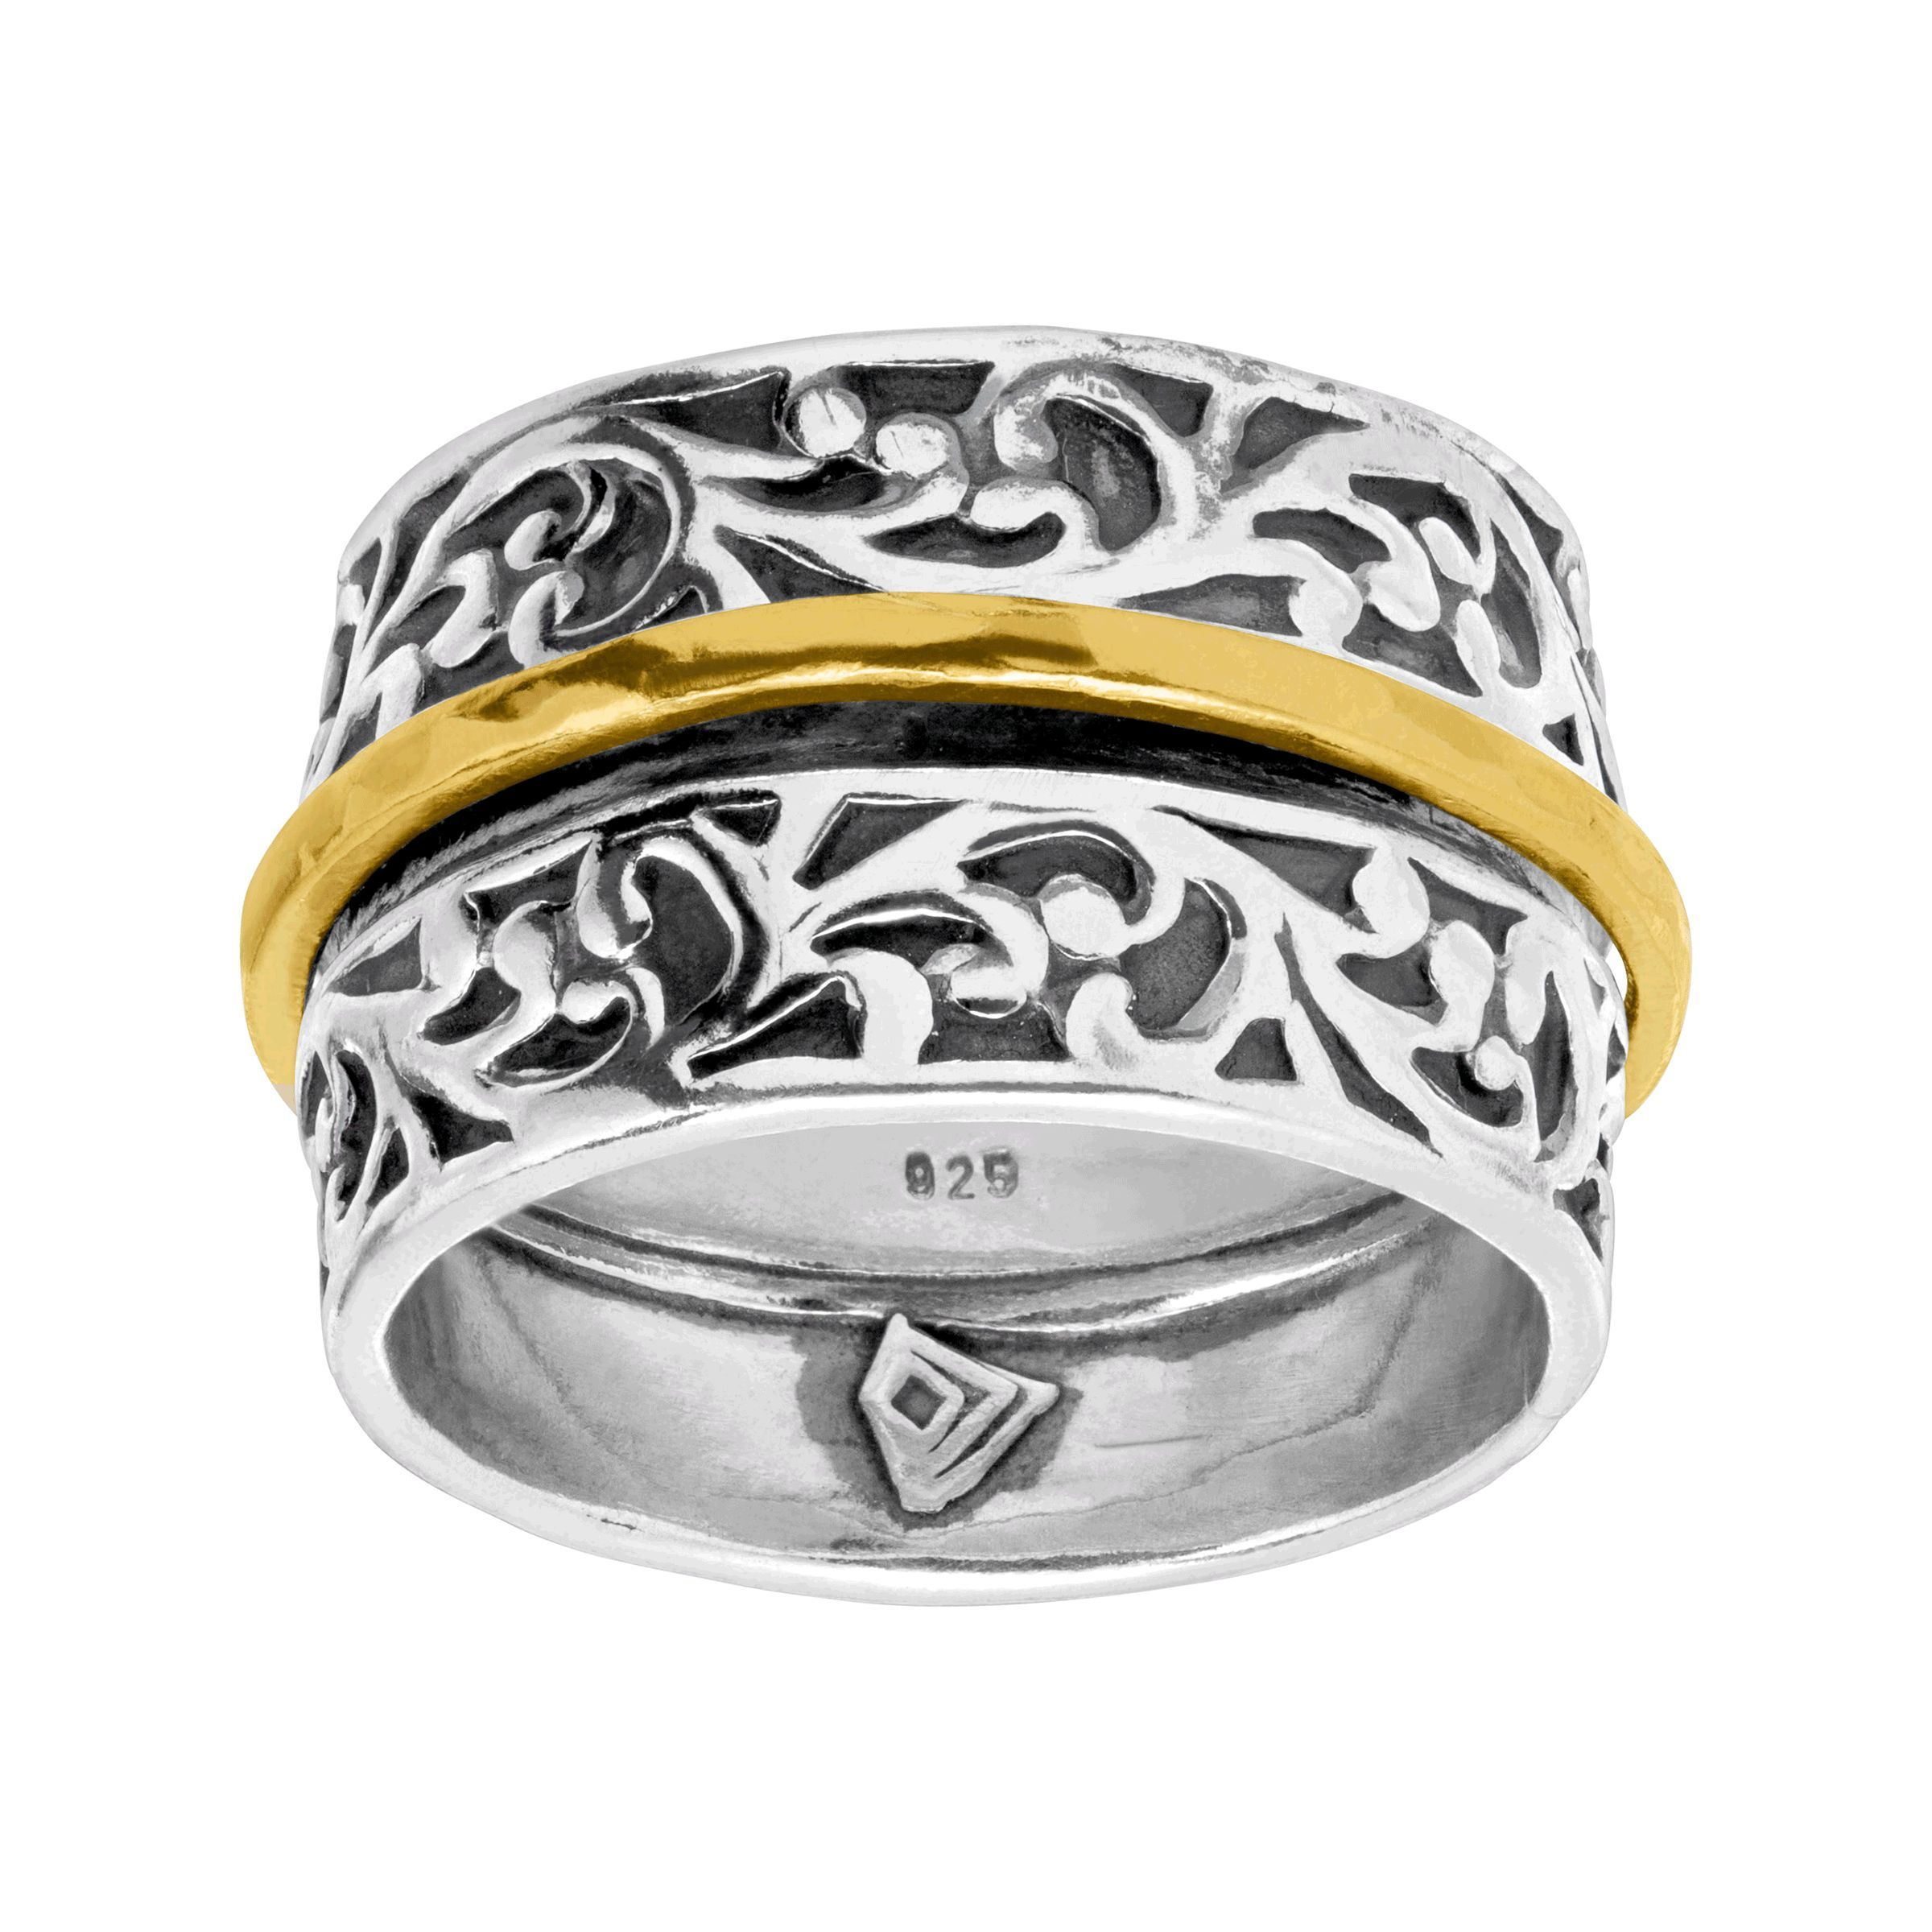 Silpada  Twice As Bright  Filigree Spinner Ring in Sterling Silver ... 54b8628a2b4f0